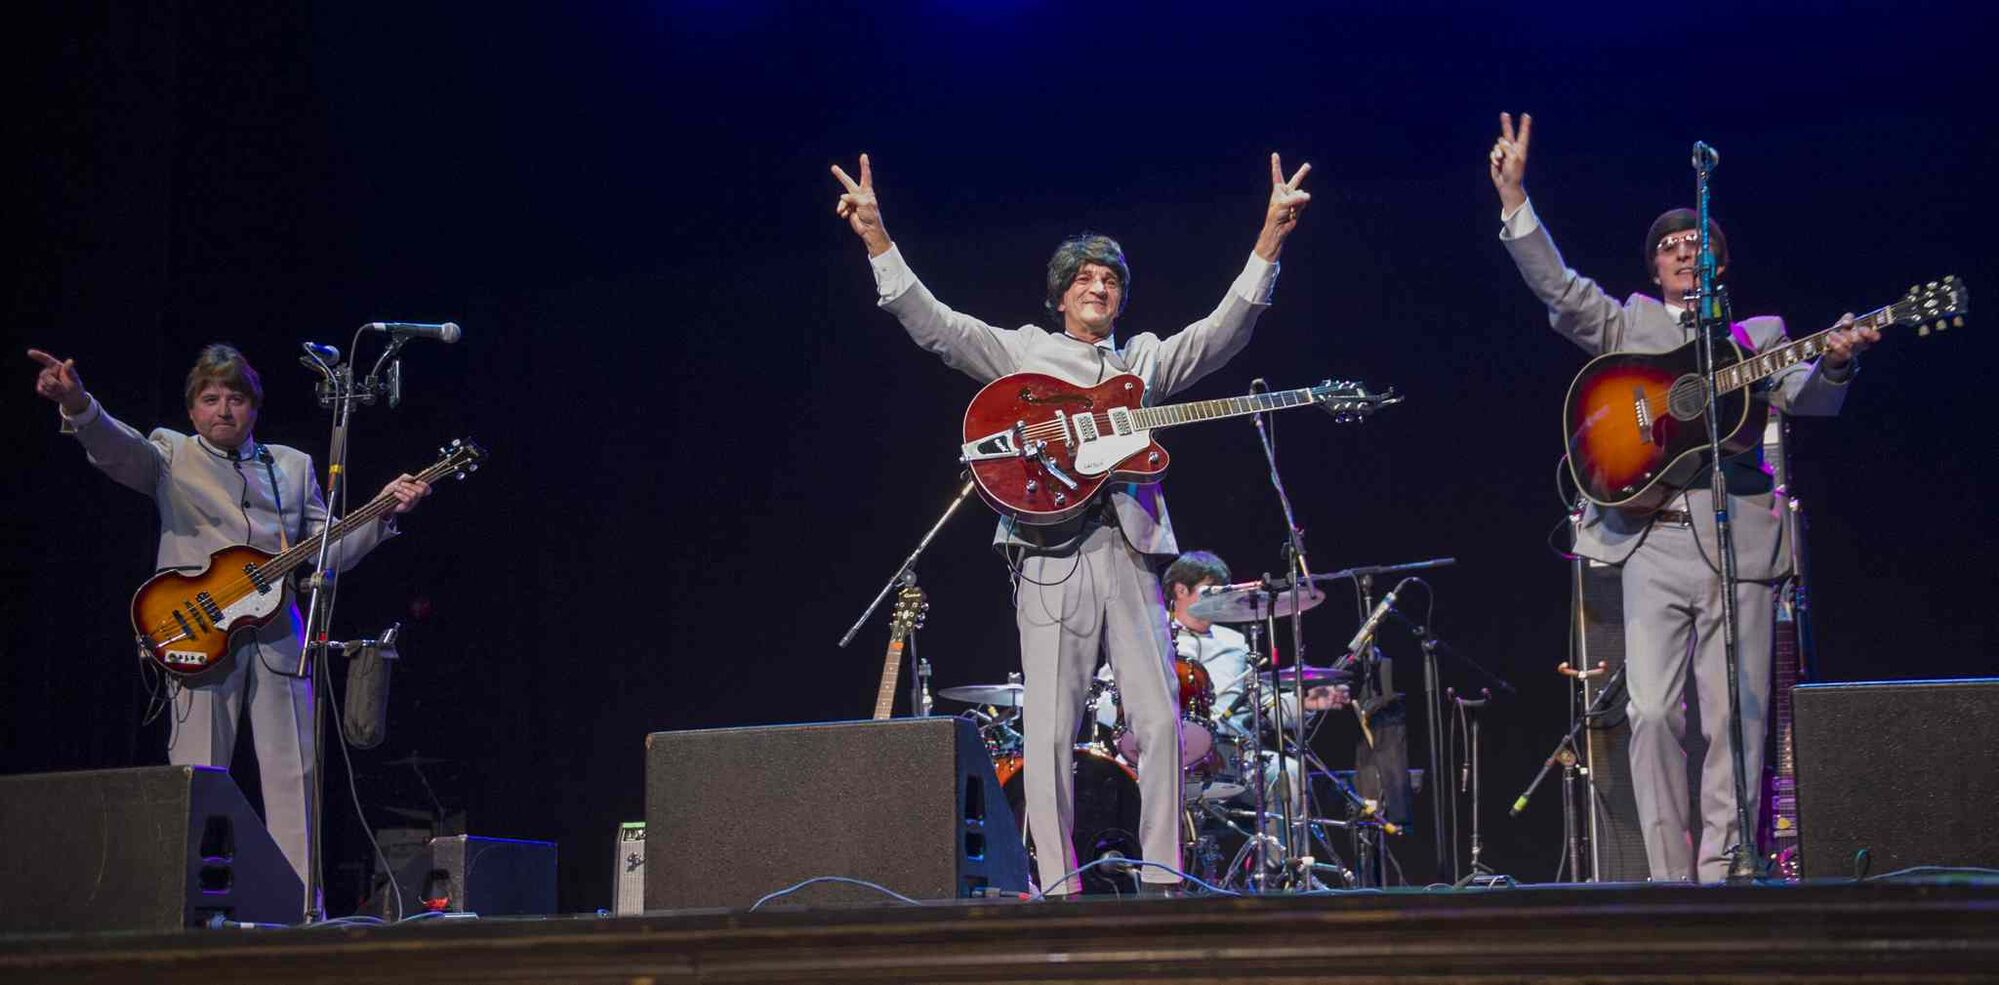 Free Ride performs at the Concert for Peace, recognizing the International Day of Peace, Saturday night at the Burton Cummings Theatre. (DAVID LIPNOWSKI / WINNIPEG FREE PRESS)